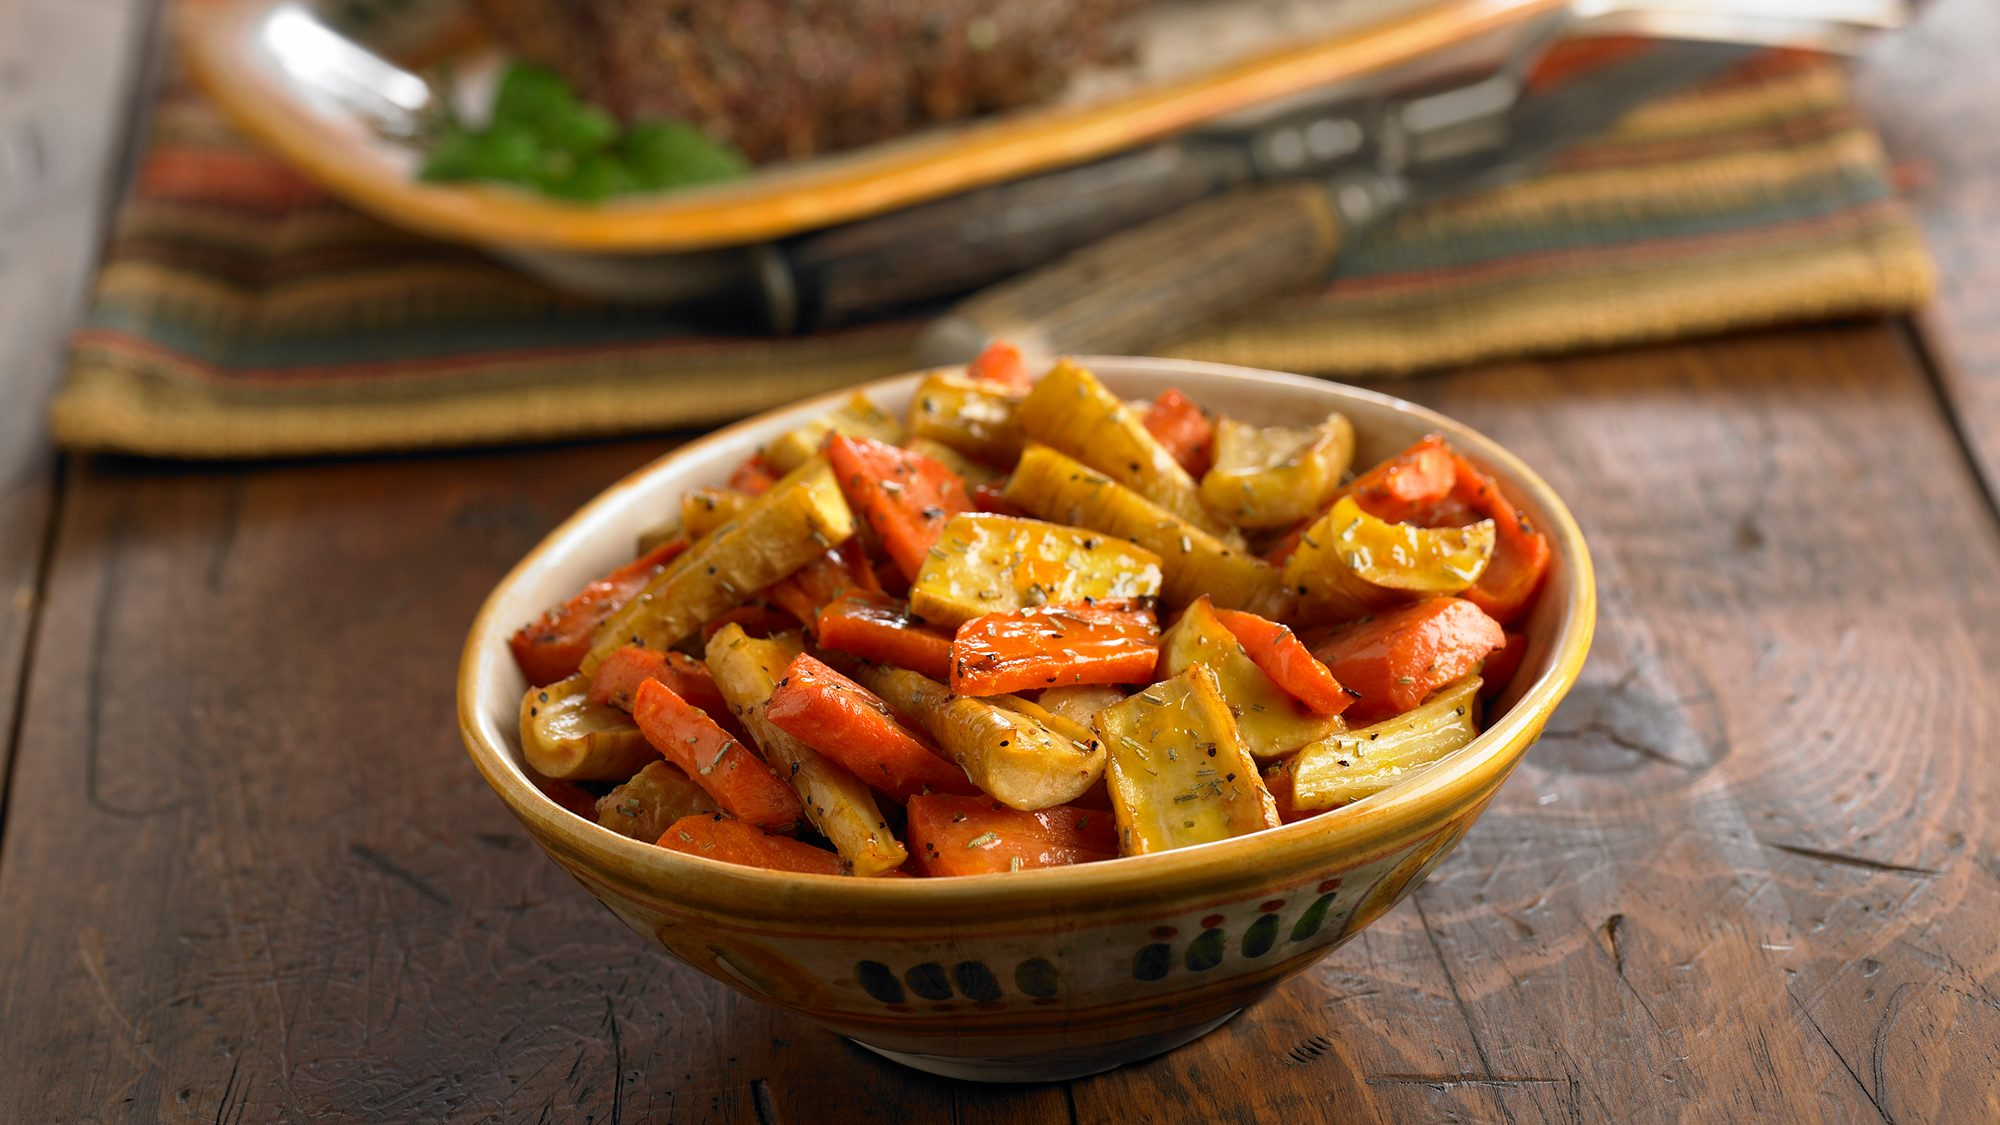 apricot-rosemary-roasted-parsnips-and-carrots.jpg